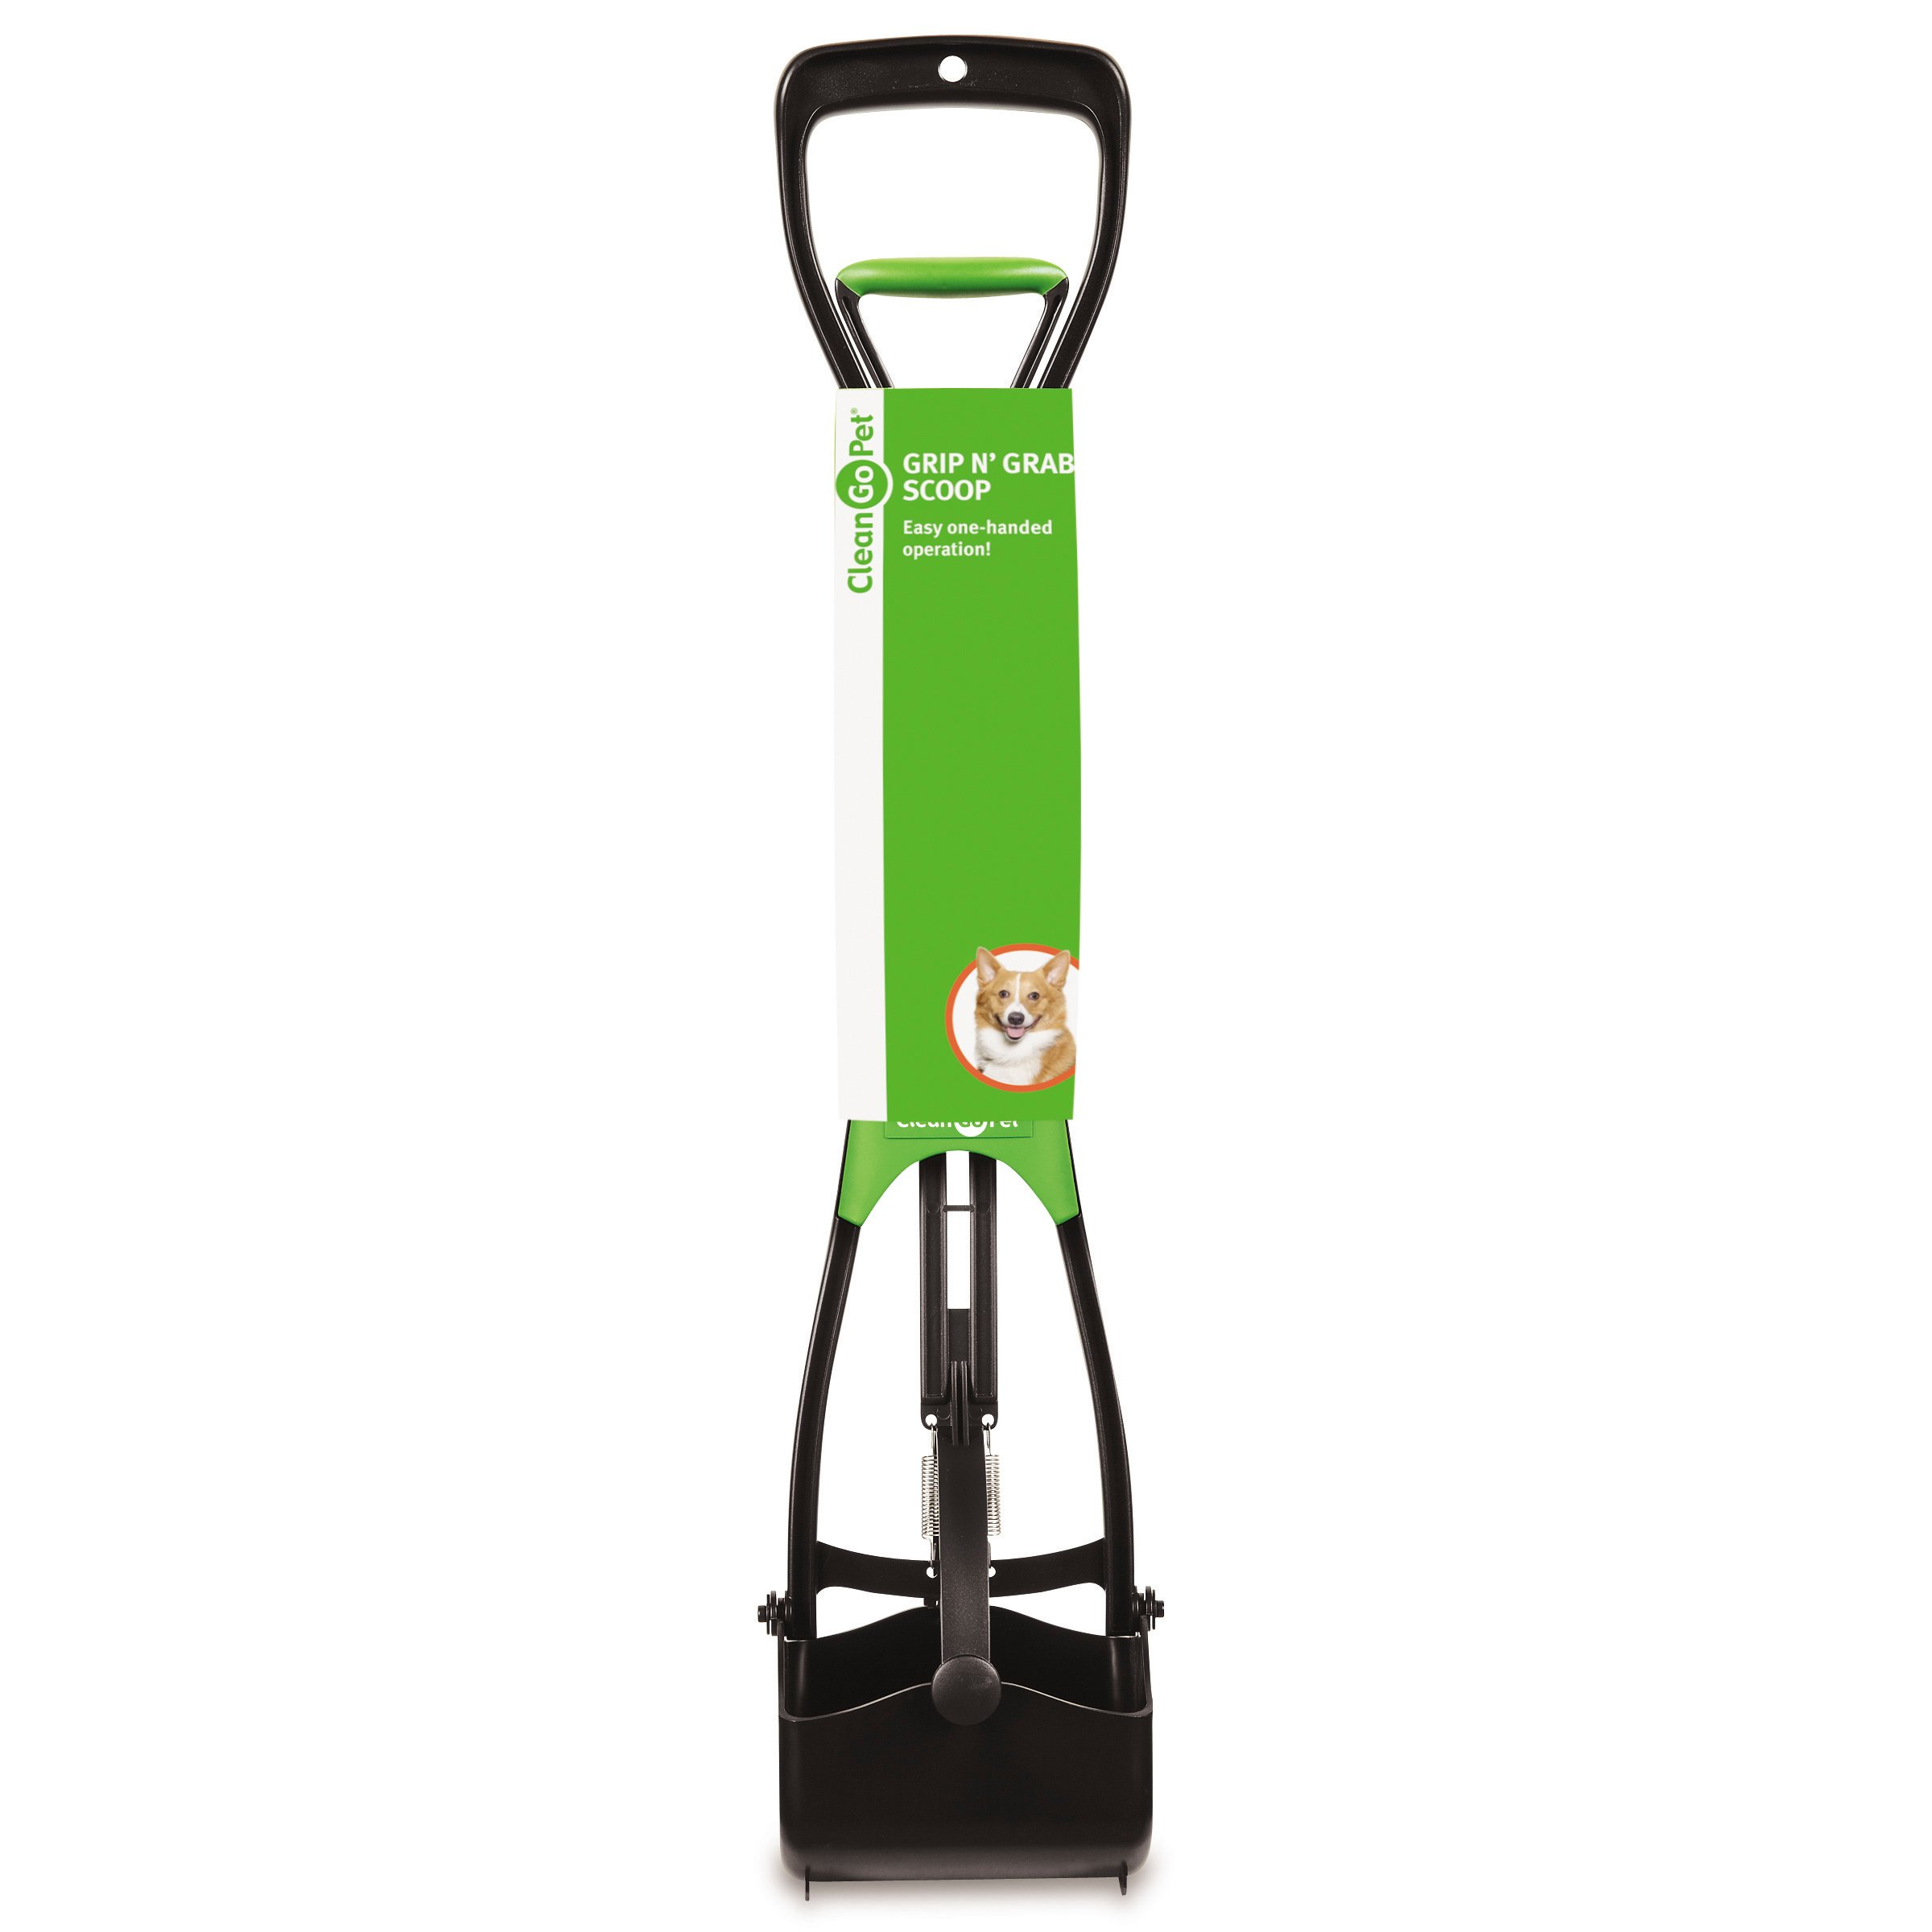 Clean Go Pet Grip-N-Grab Pet Waste Scoop with Double Spring-Action, Convenient One-Handed Operation